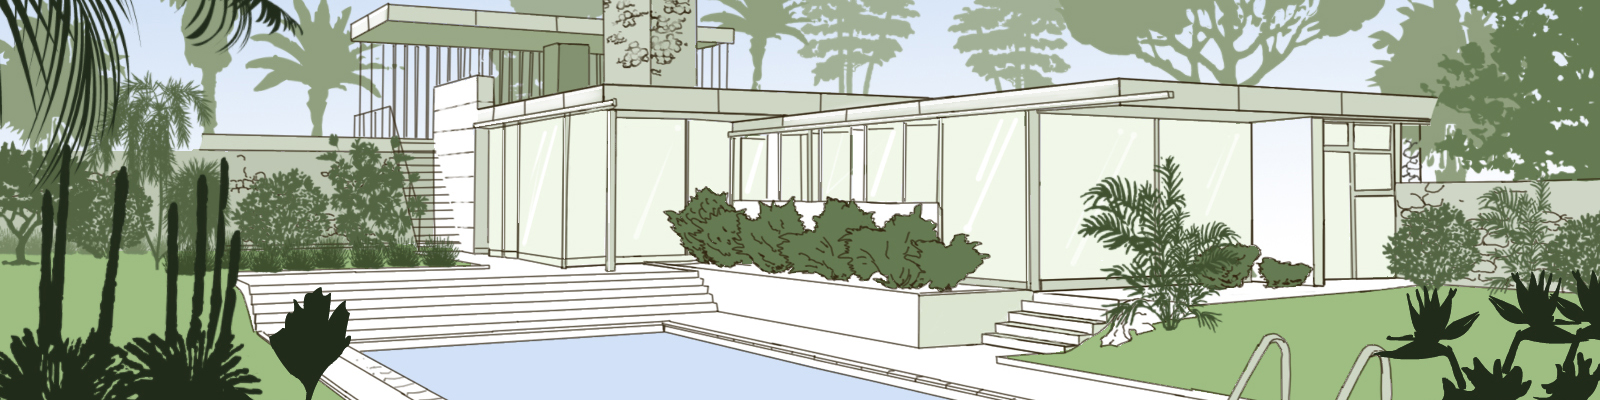 Green Parrot Gardens   Buying, Building and Selling on the French Riviera